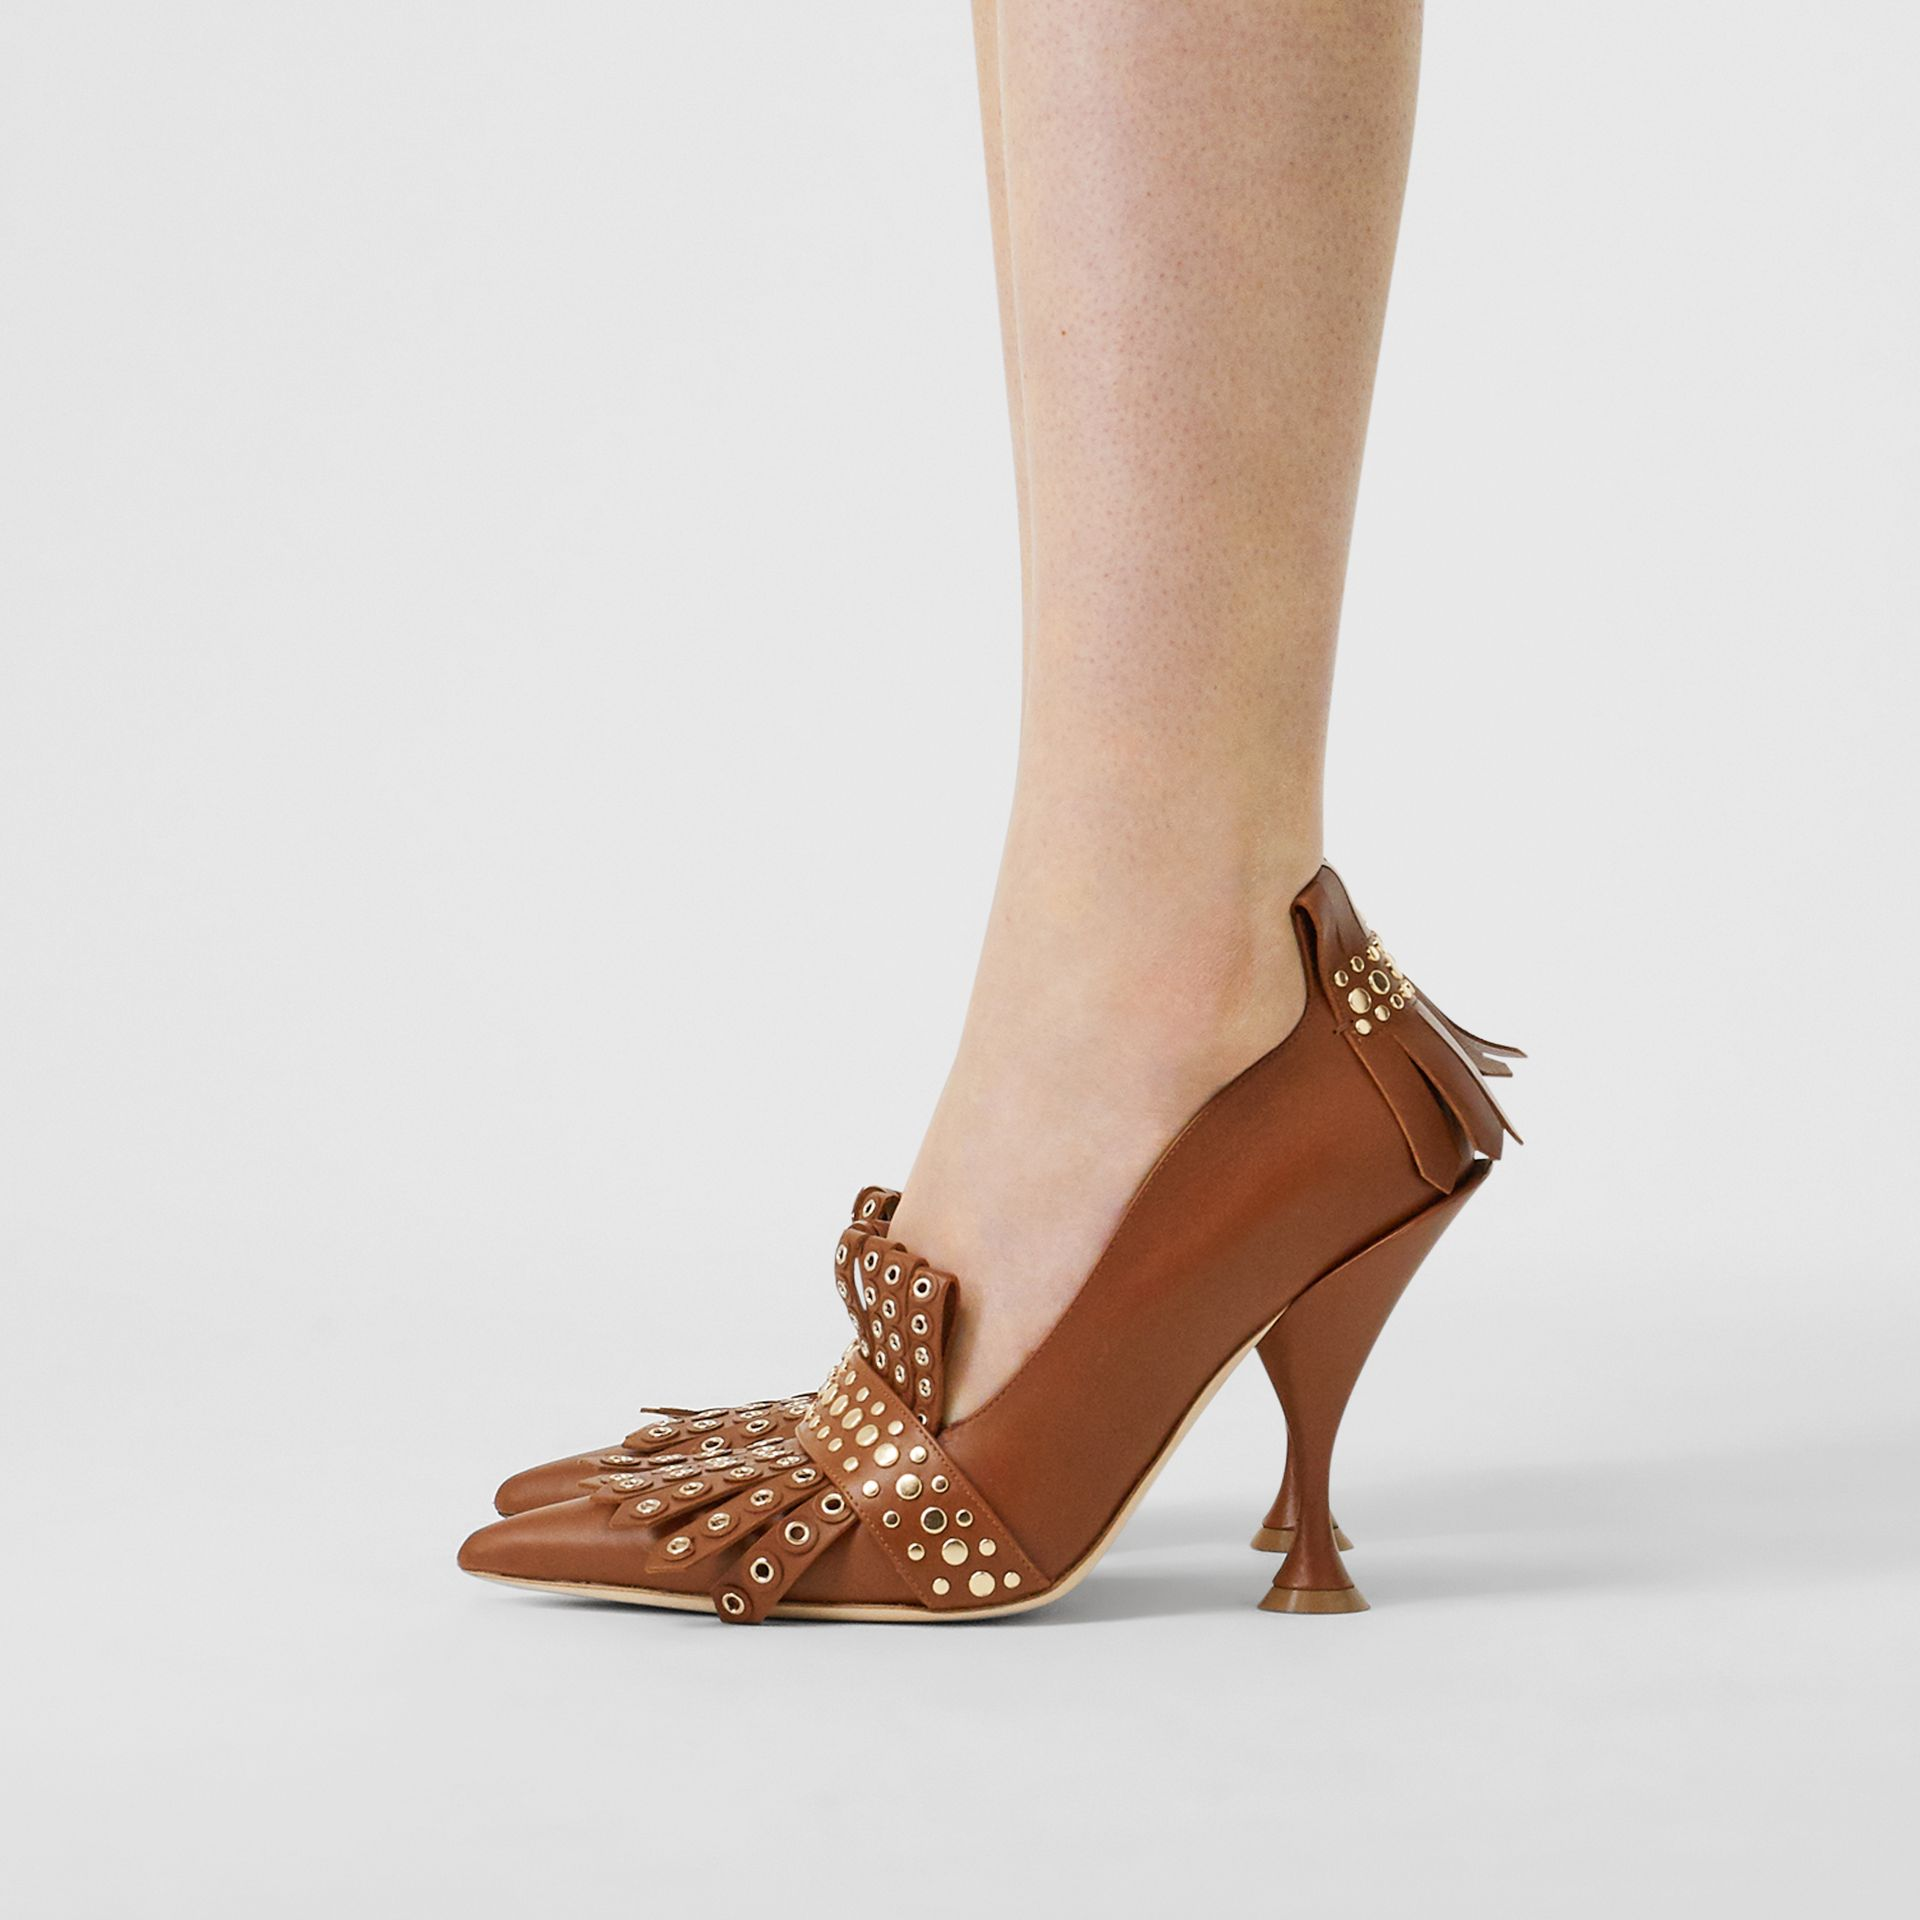 Studded Kiltie Fringe Leather Point-toe Pumps in Tan - Women | Burberry United Kingdom - gallery image 2